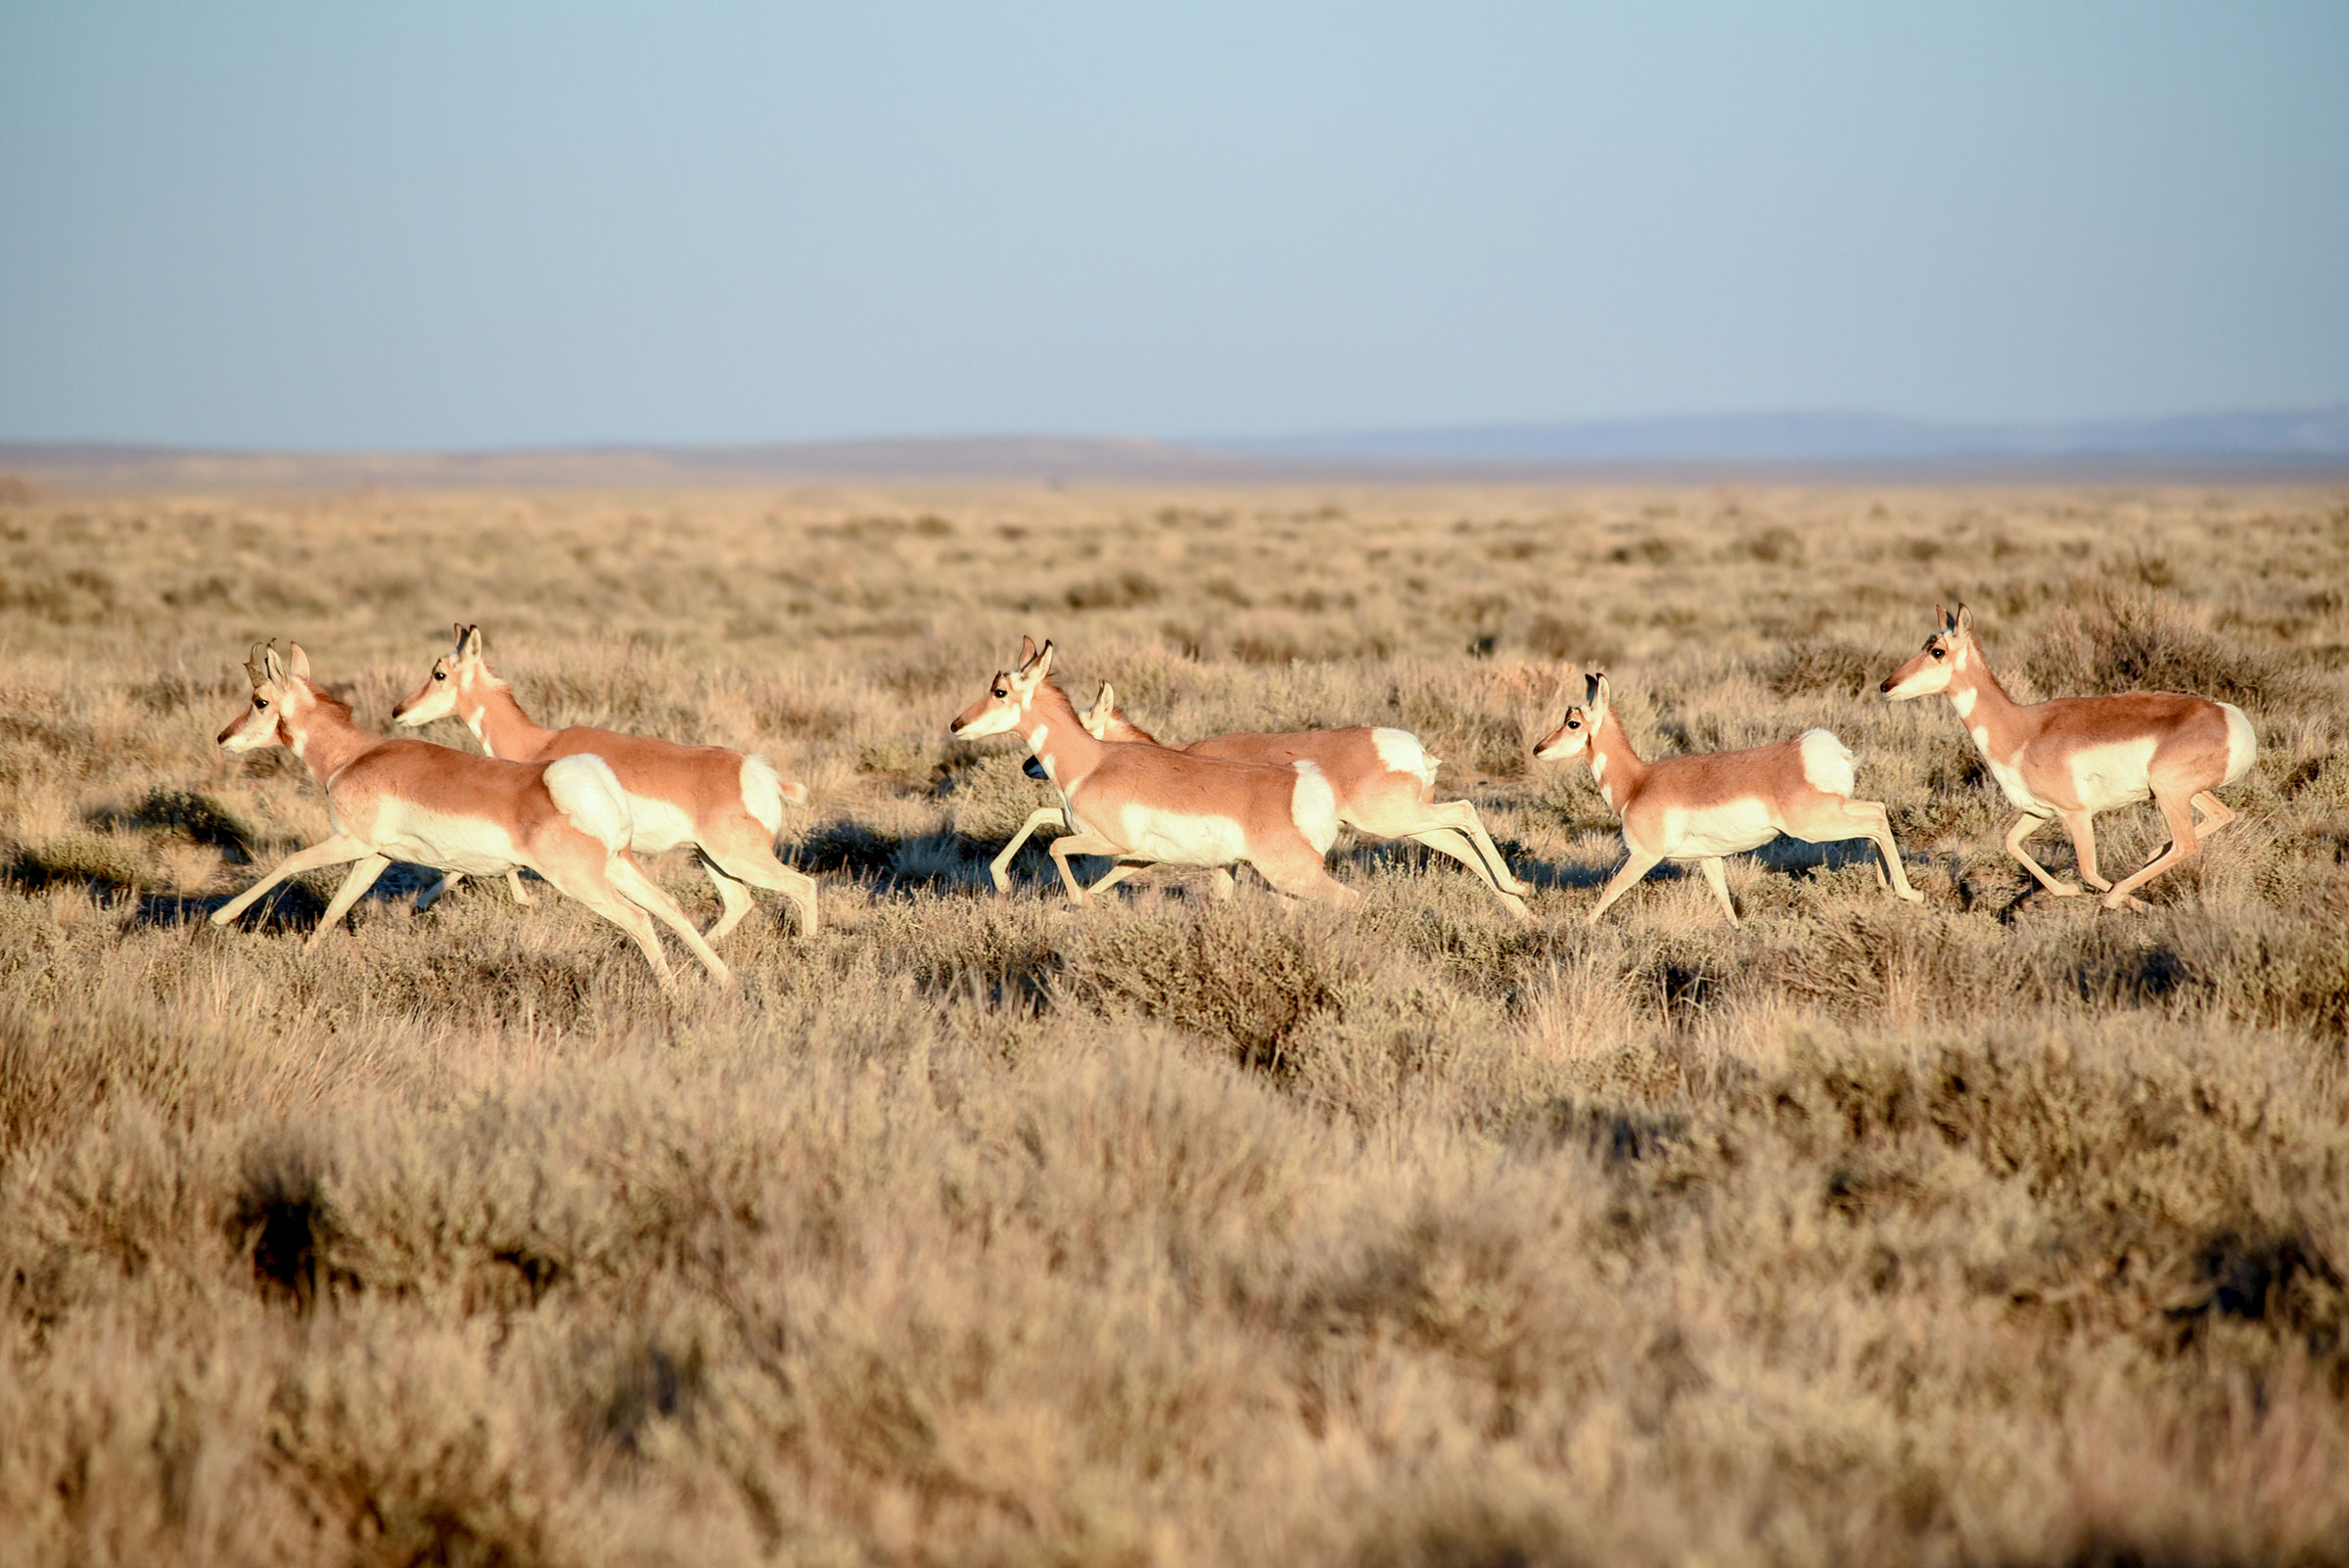 Along with sage-grouse, a Wyoming lease sale includes key habitat for pronghorn. USFWS